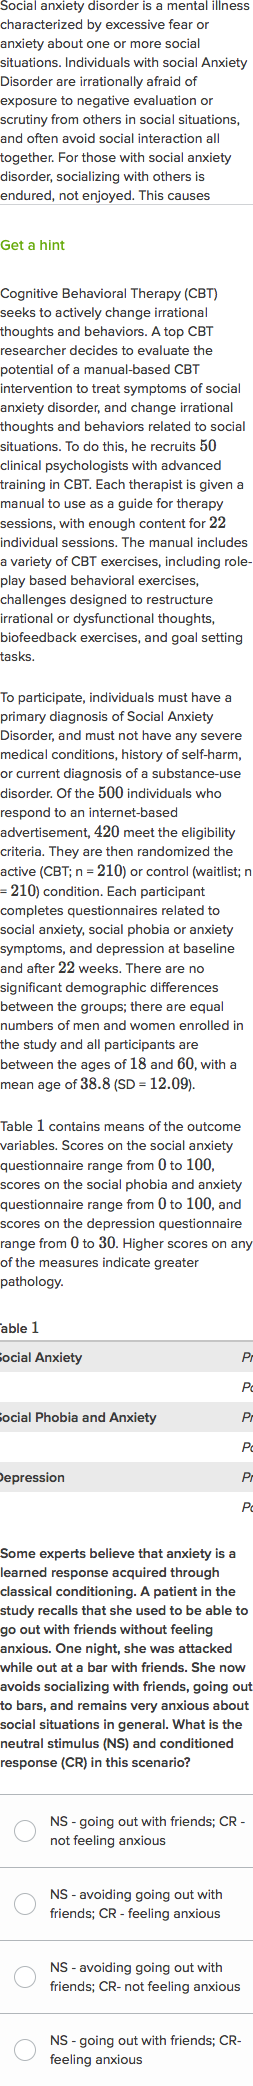 an analysis of the social anxiety disorder and its treatment using classical conditioning 1 social anxiety disorder in children and adolescents: assessment, maintaining factors, and treatment rio cederlund.